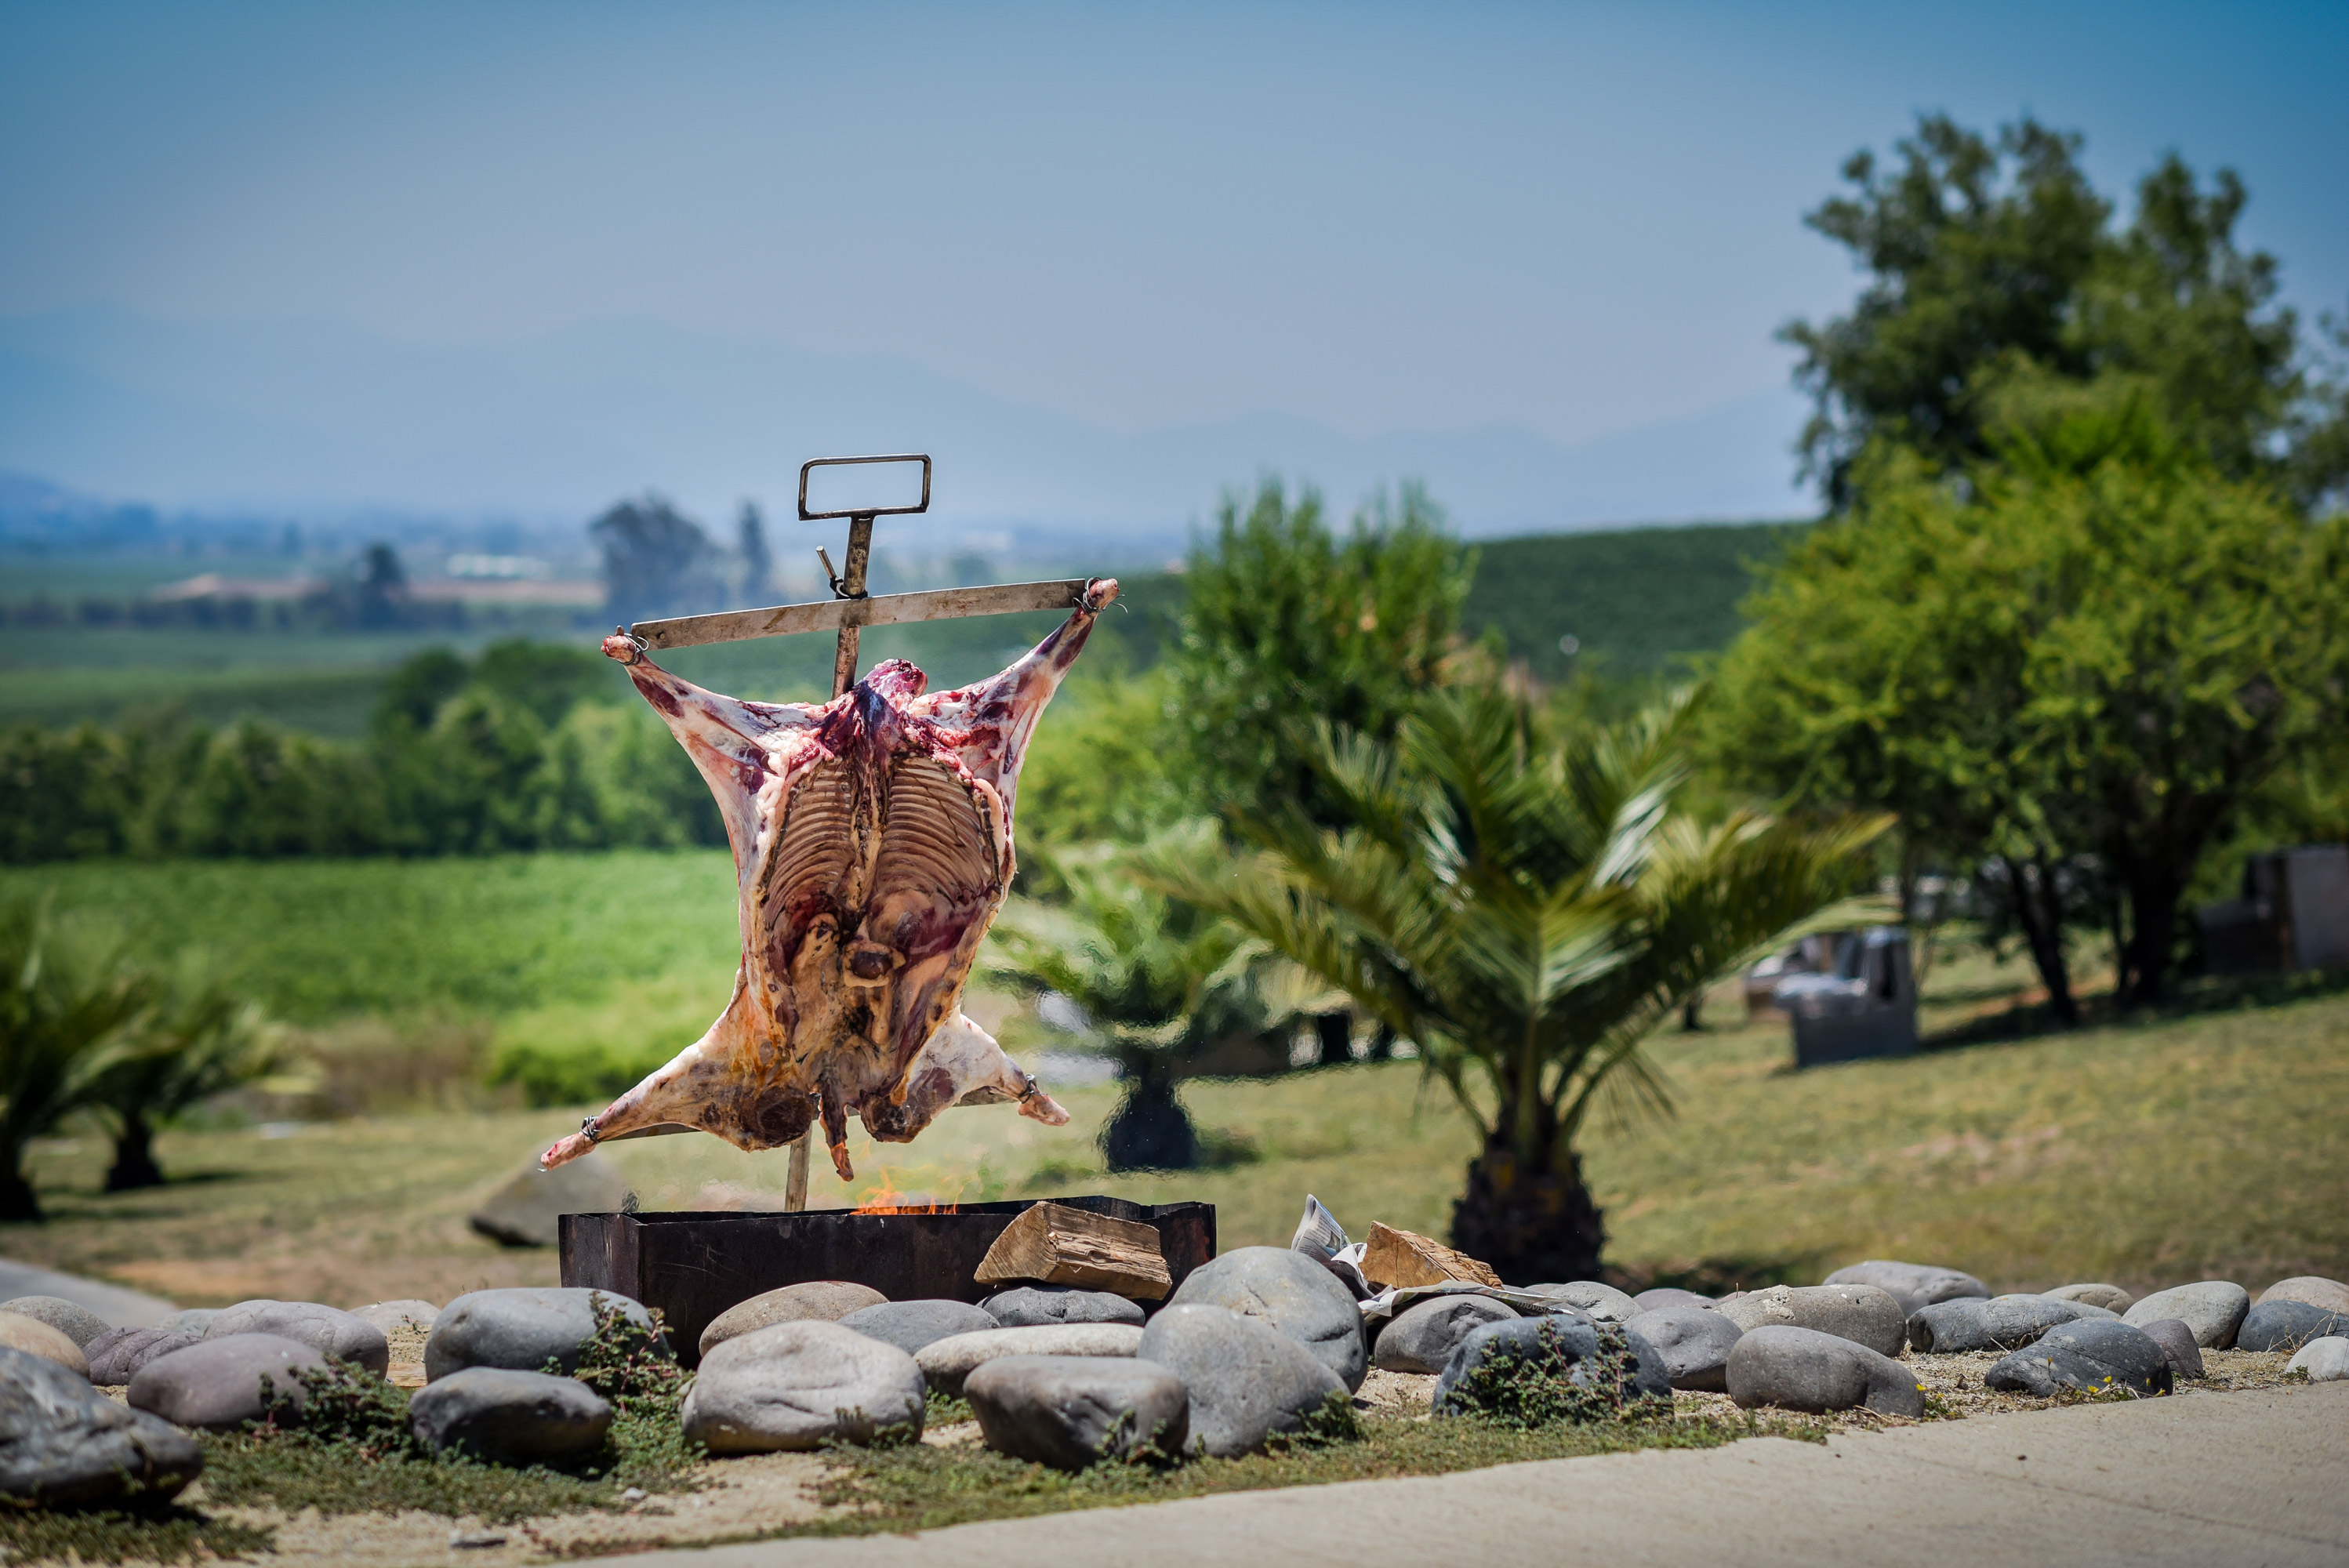 Cordero al palo or roasted lamb with the winery in the background.